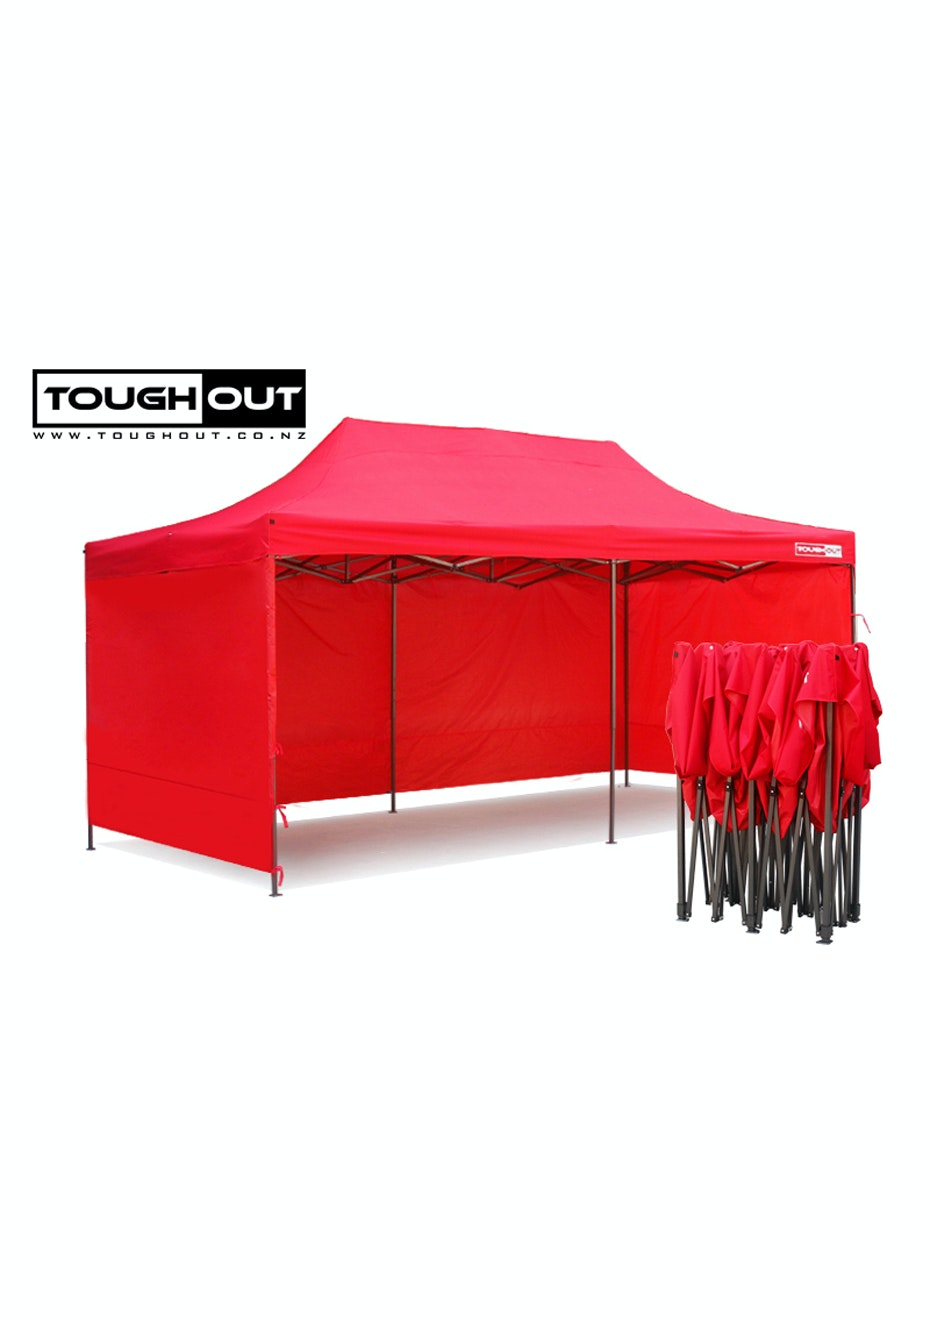 sc 1 st  Onceit & Gazebo 6mt Red with full side walls - Outdoor Furniture - Onceit